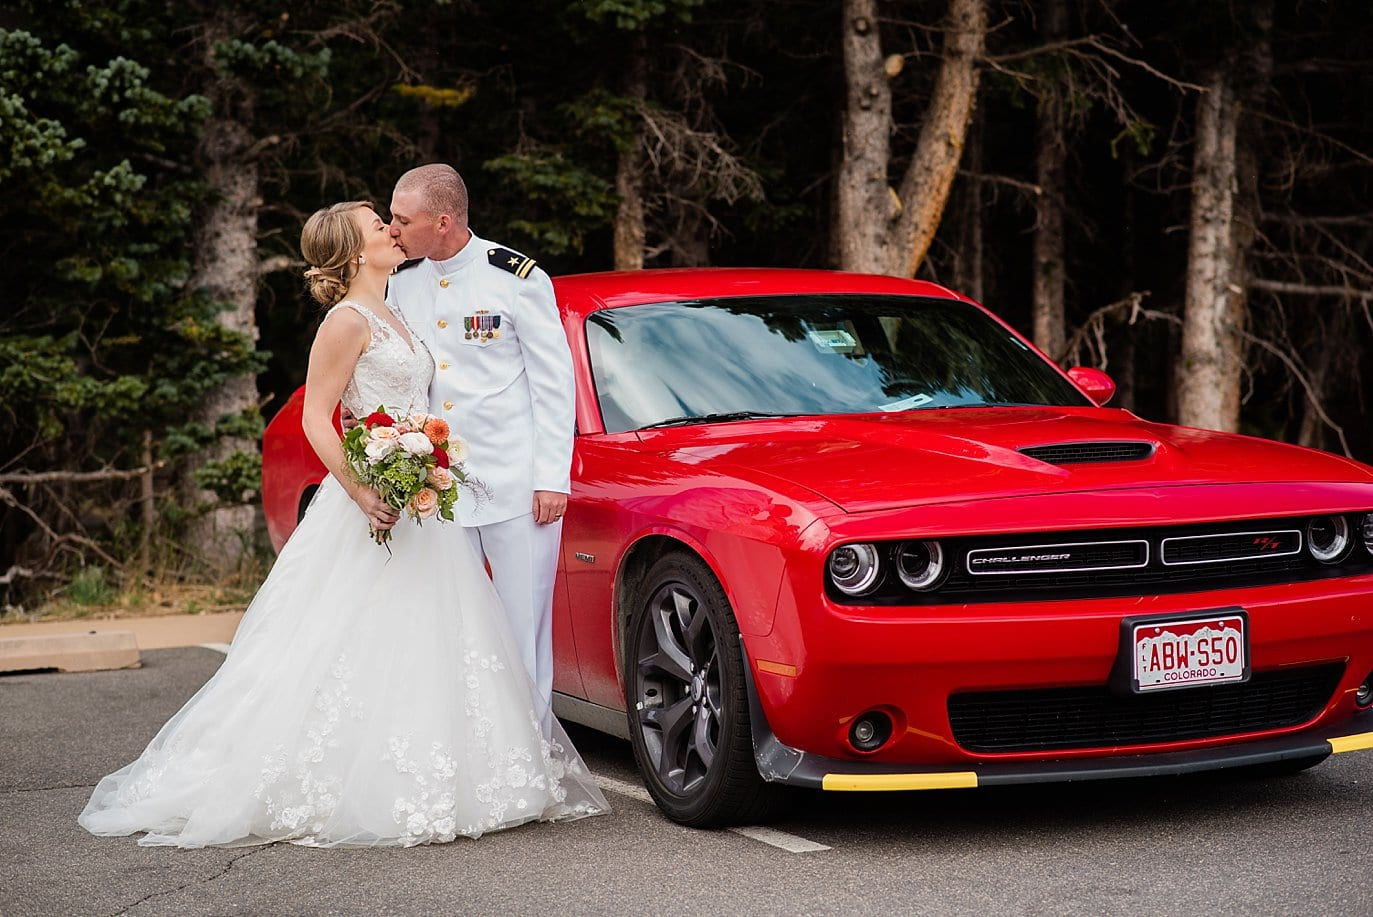 bride and groom by red sports car Colorado elopement